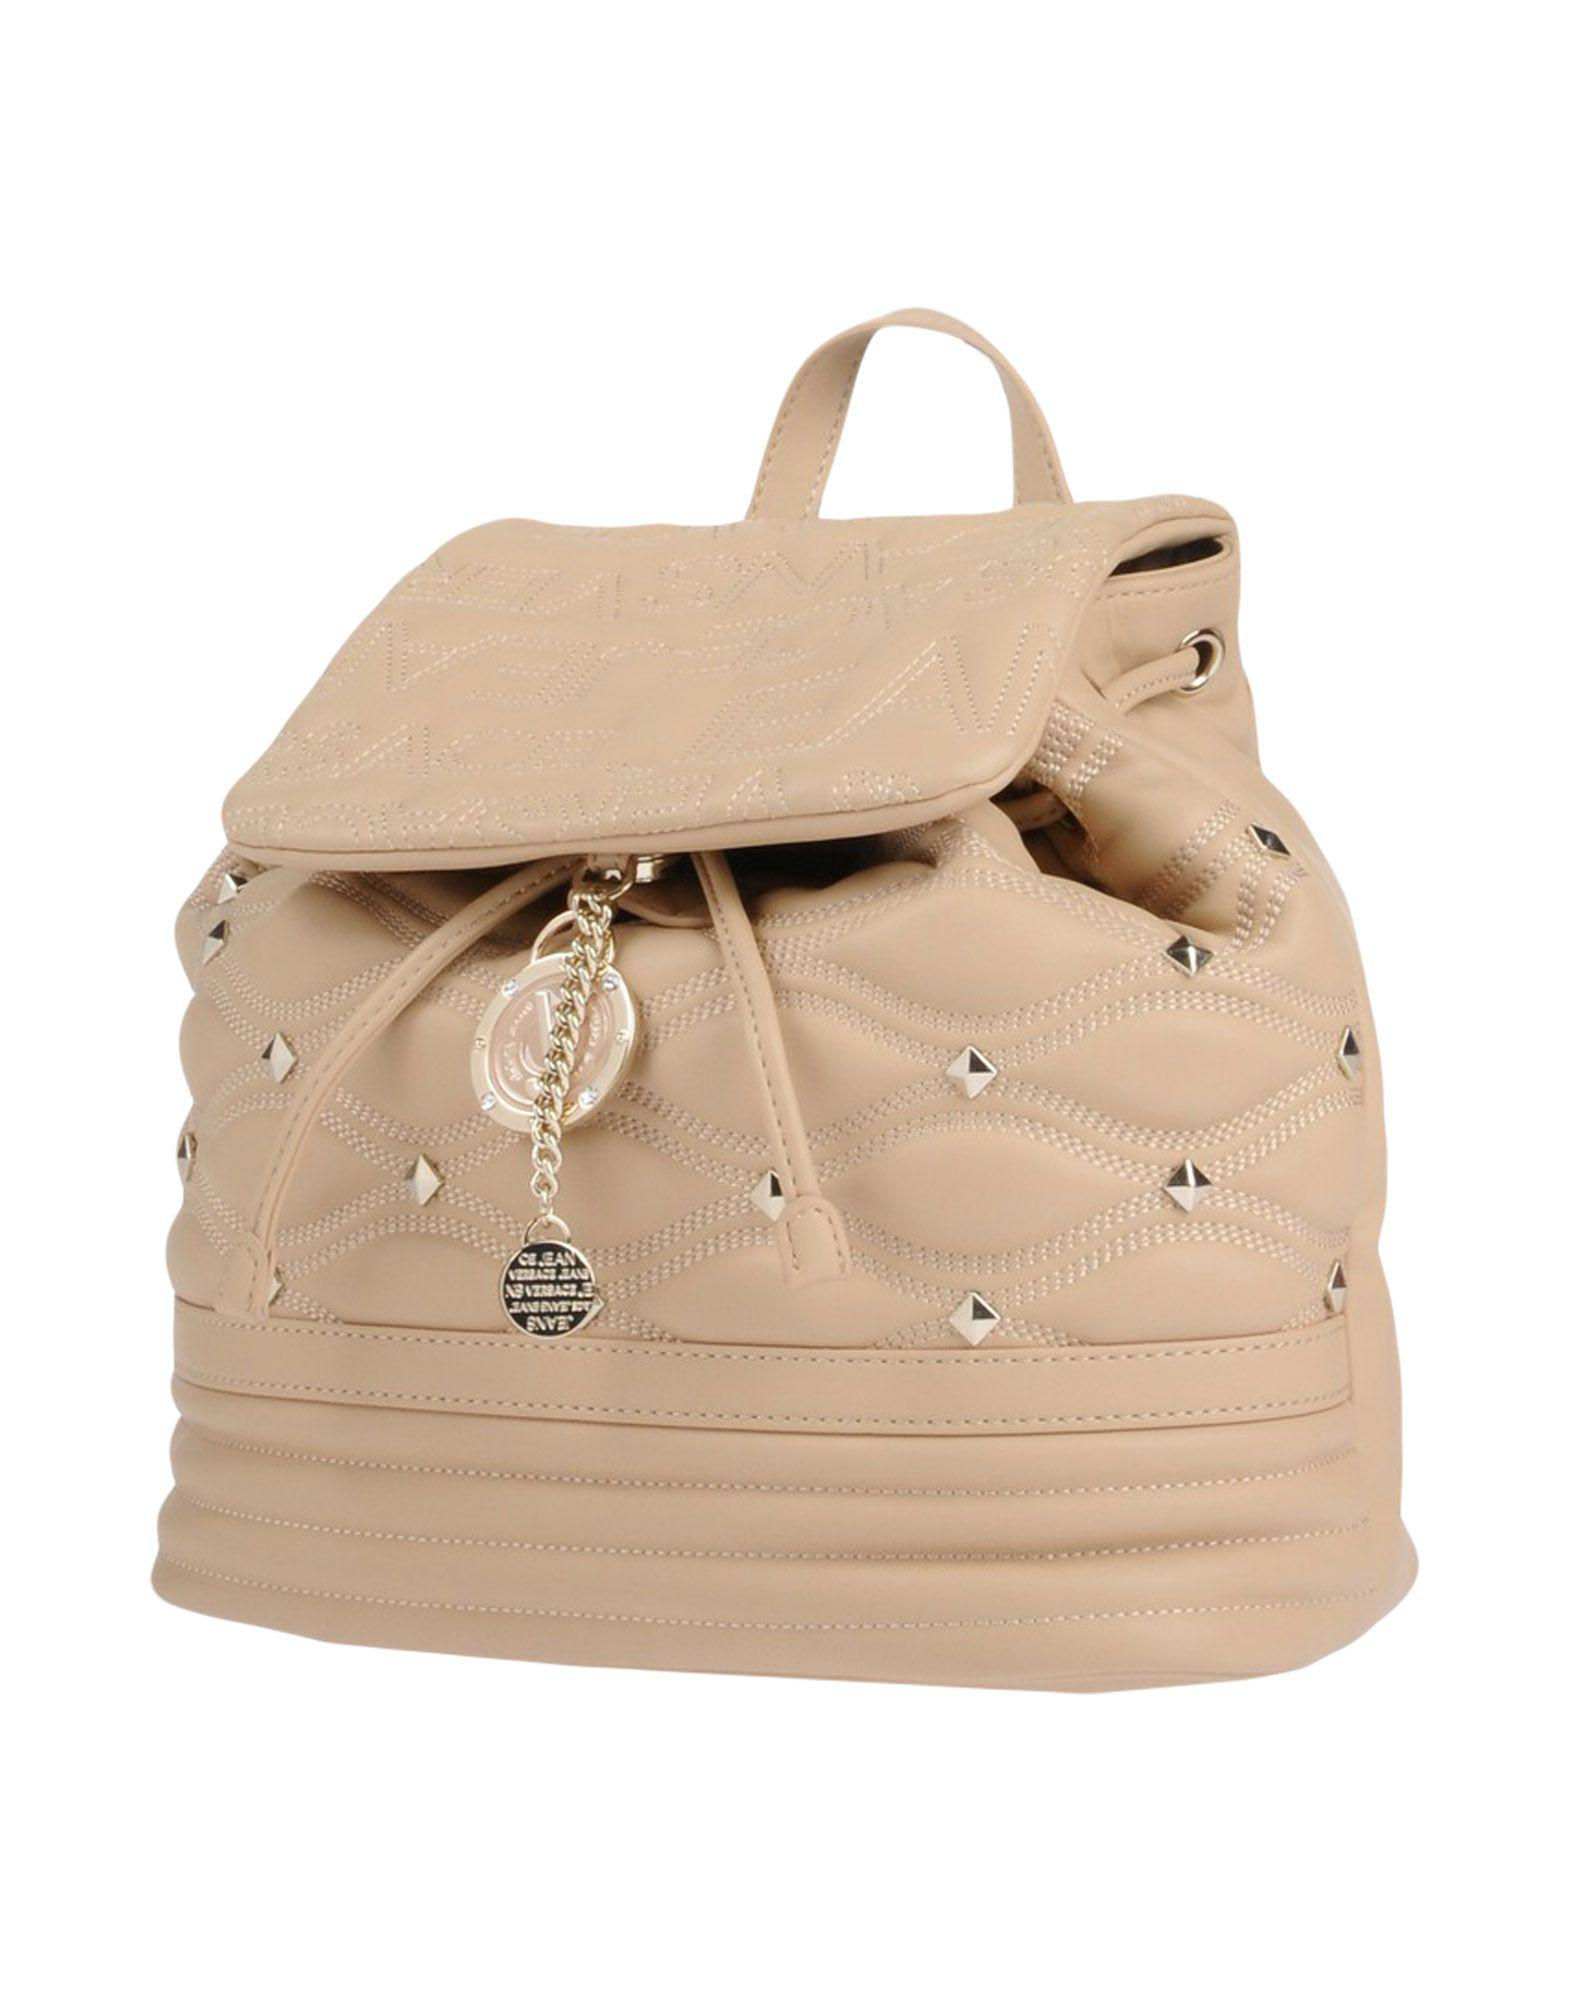 Lyst - Versace Jeans Backpacks   Fanny Packs in Natural 920c9ff073